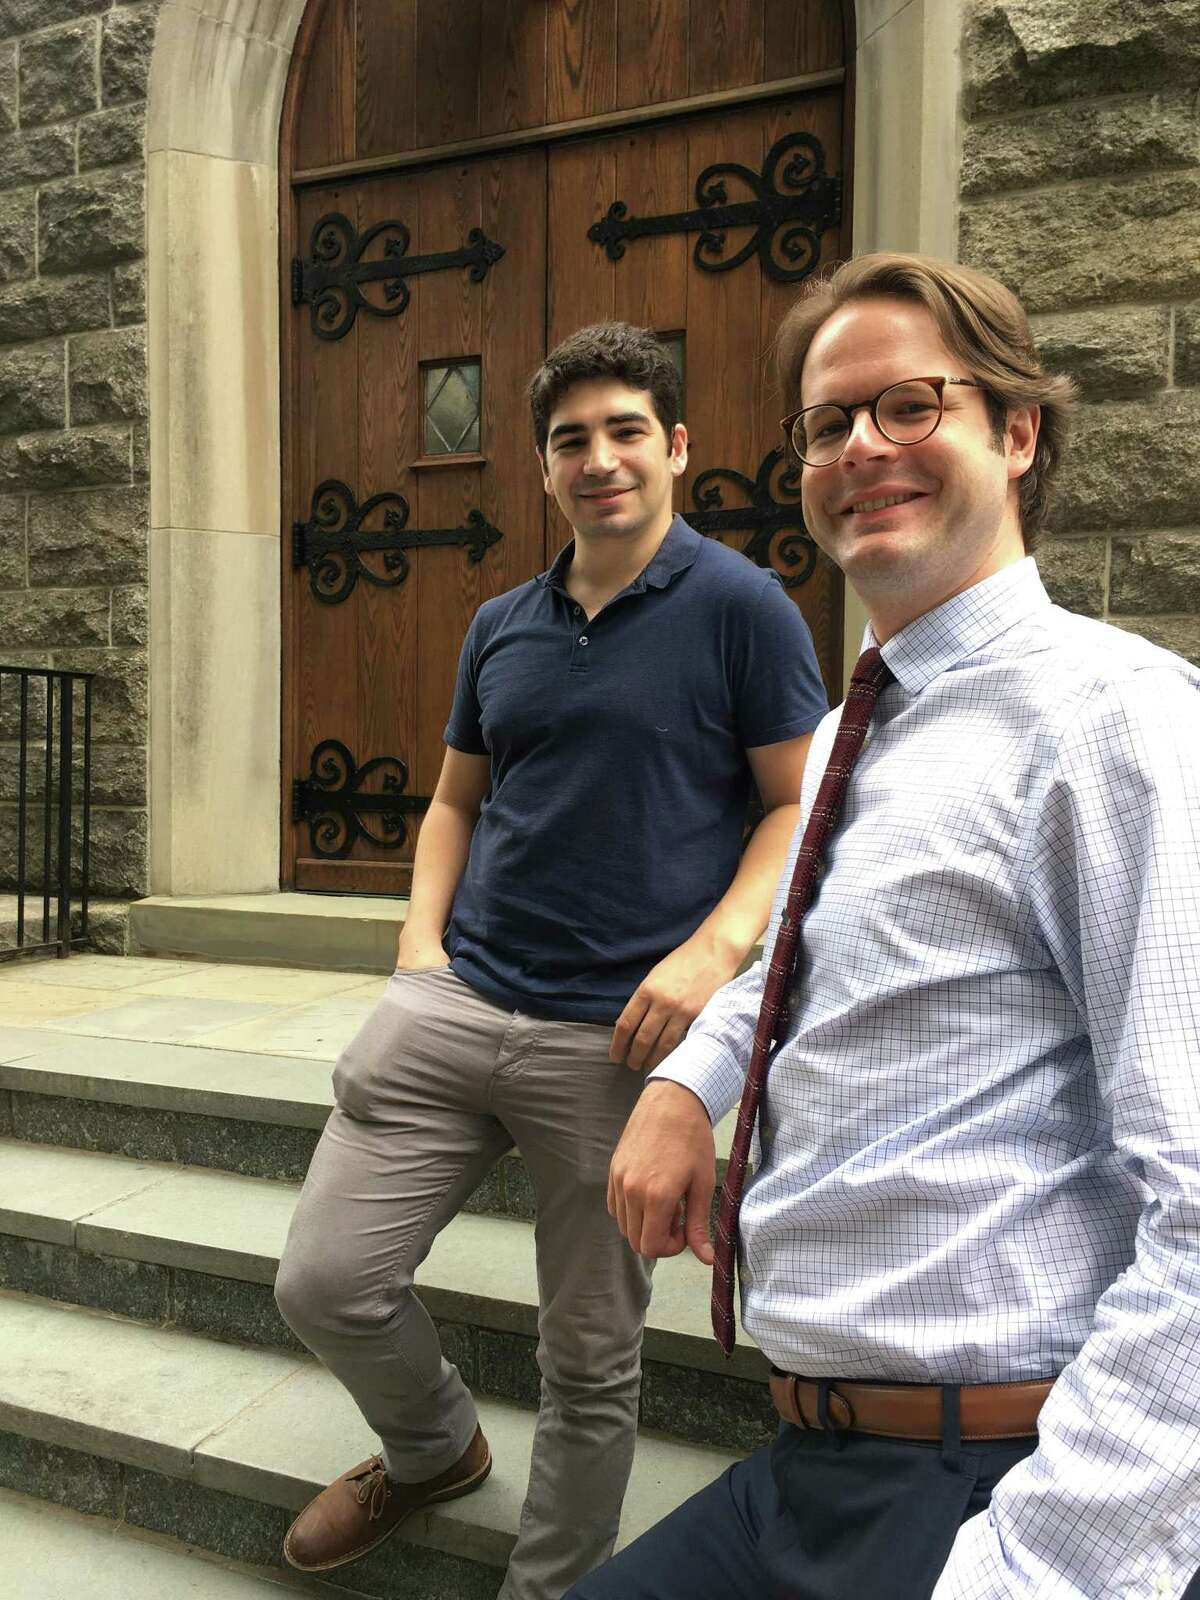 As the Young Artists Philharmonic heads into its 59th season, it will be led by new conductor and music director, Benjamin Grow, right. He stands with the music group's executive director, Greg Robbins, outside the First Congregational Church of Old Greenwich.